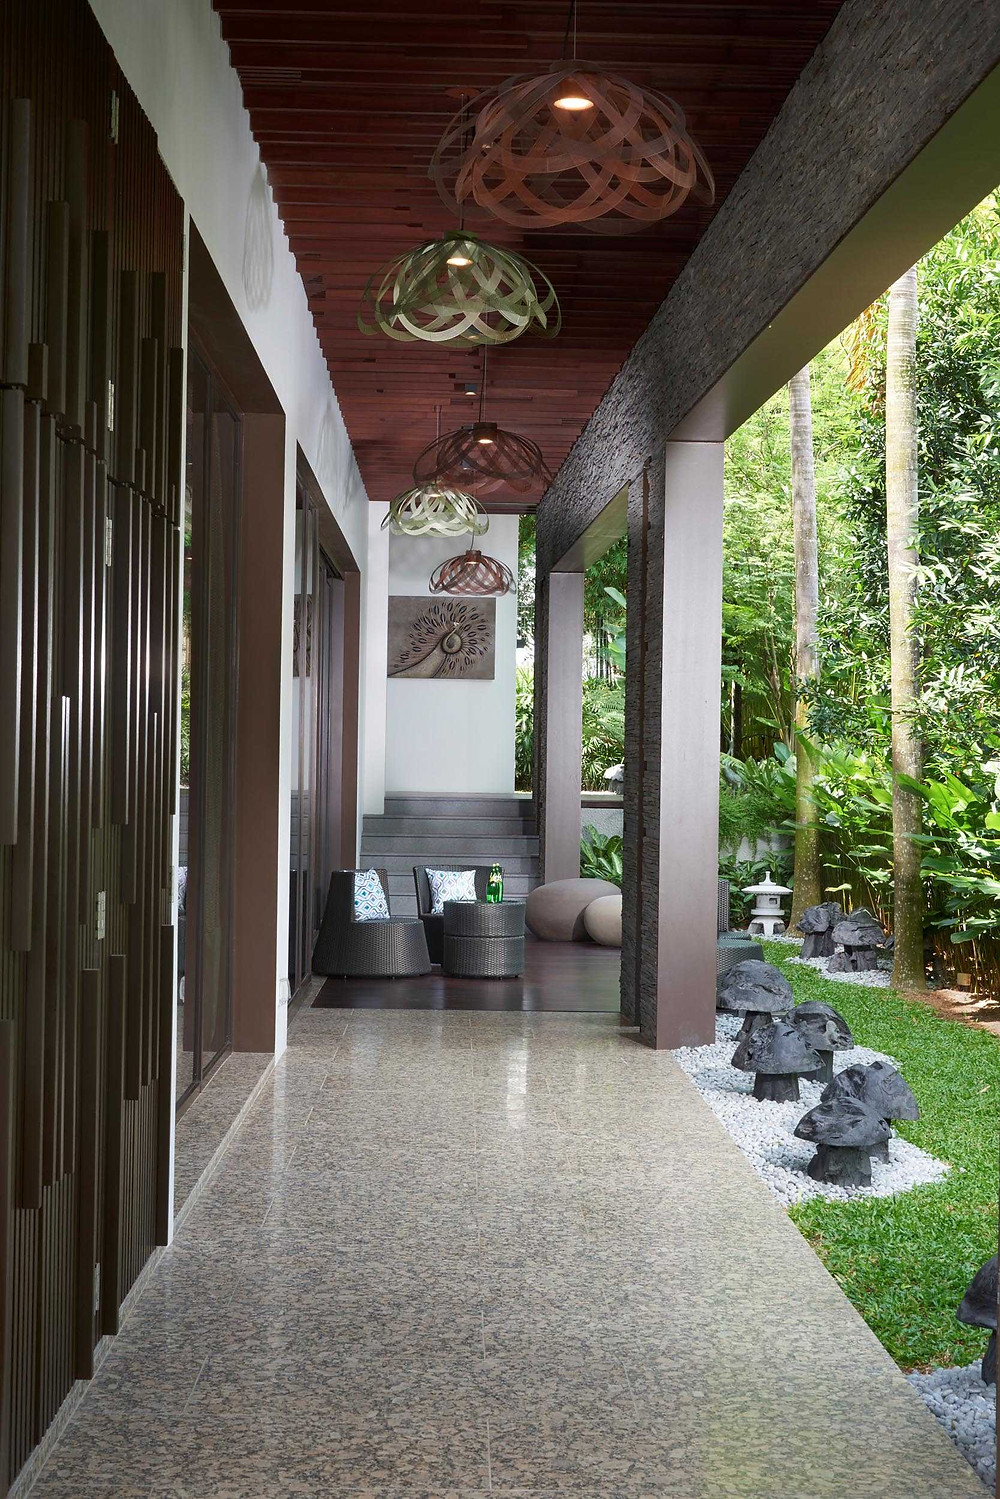 Immersing in Nature Good Class Bungalow  Natural stone Exotic stones Yeni Grey Magma Black granite Forest Onyx Nero Marquina Walnut Travertine Palisandra Gold Shanxi Black Singapore  Cable Road Leedon Park Chestnut Crescent District 10 award winning residential interior design Hotel look powder room bathroom luxurious premium high end timeless